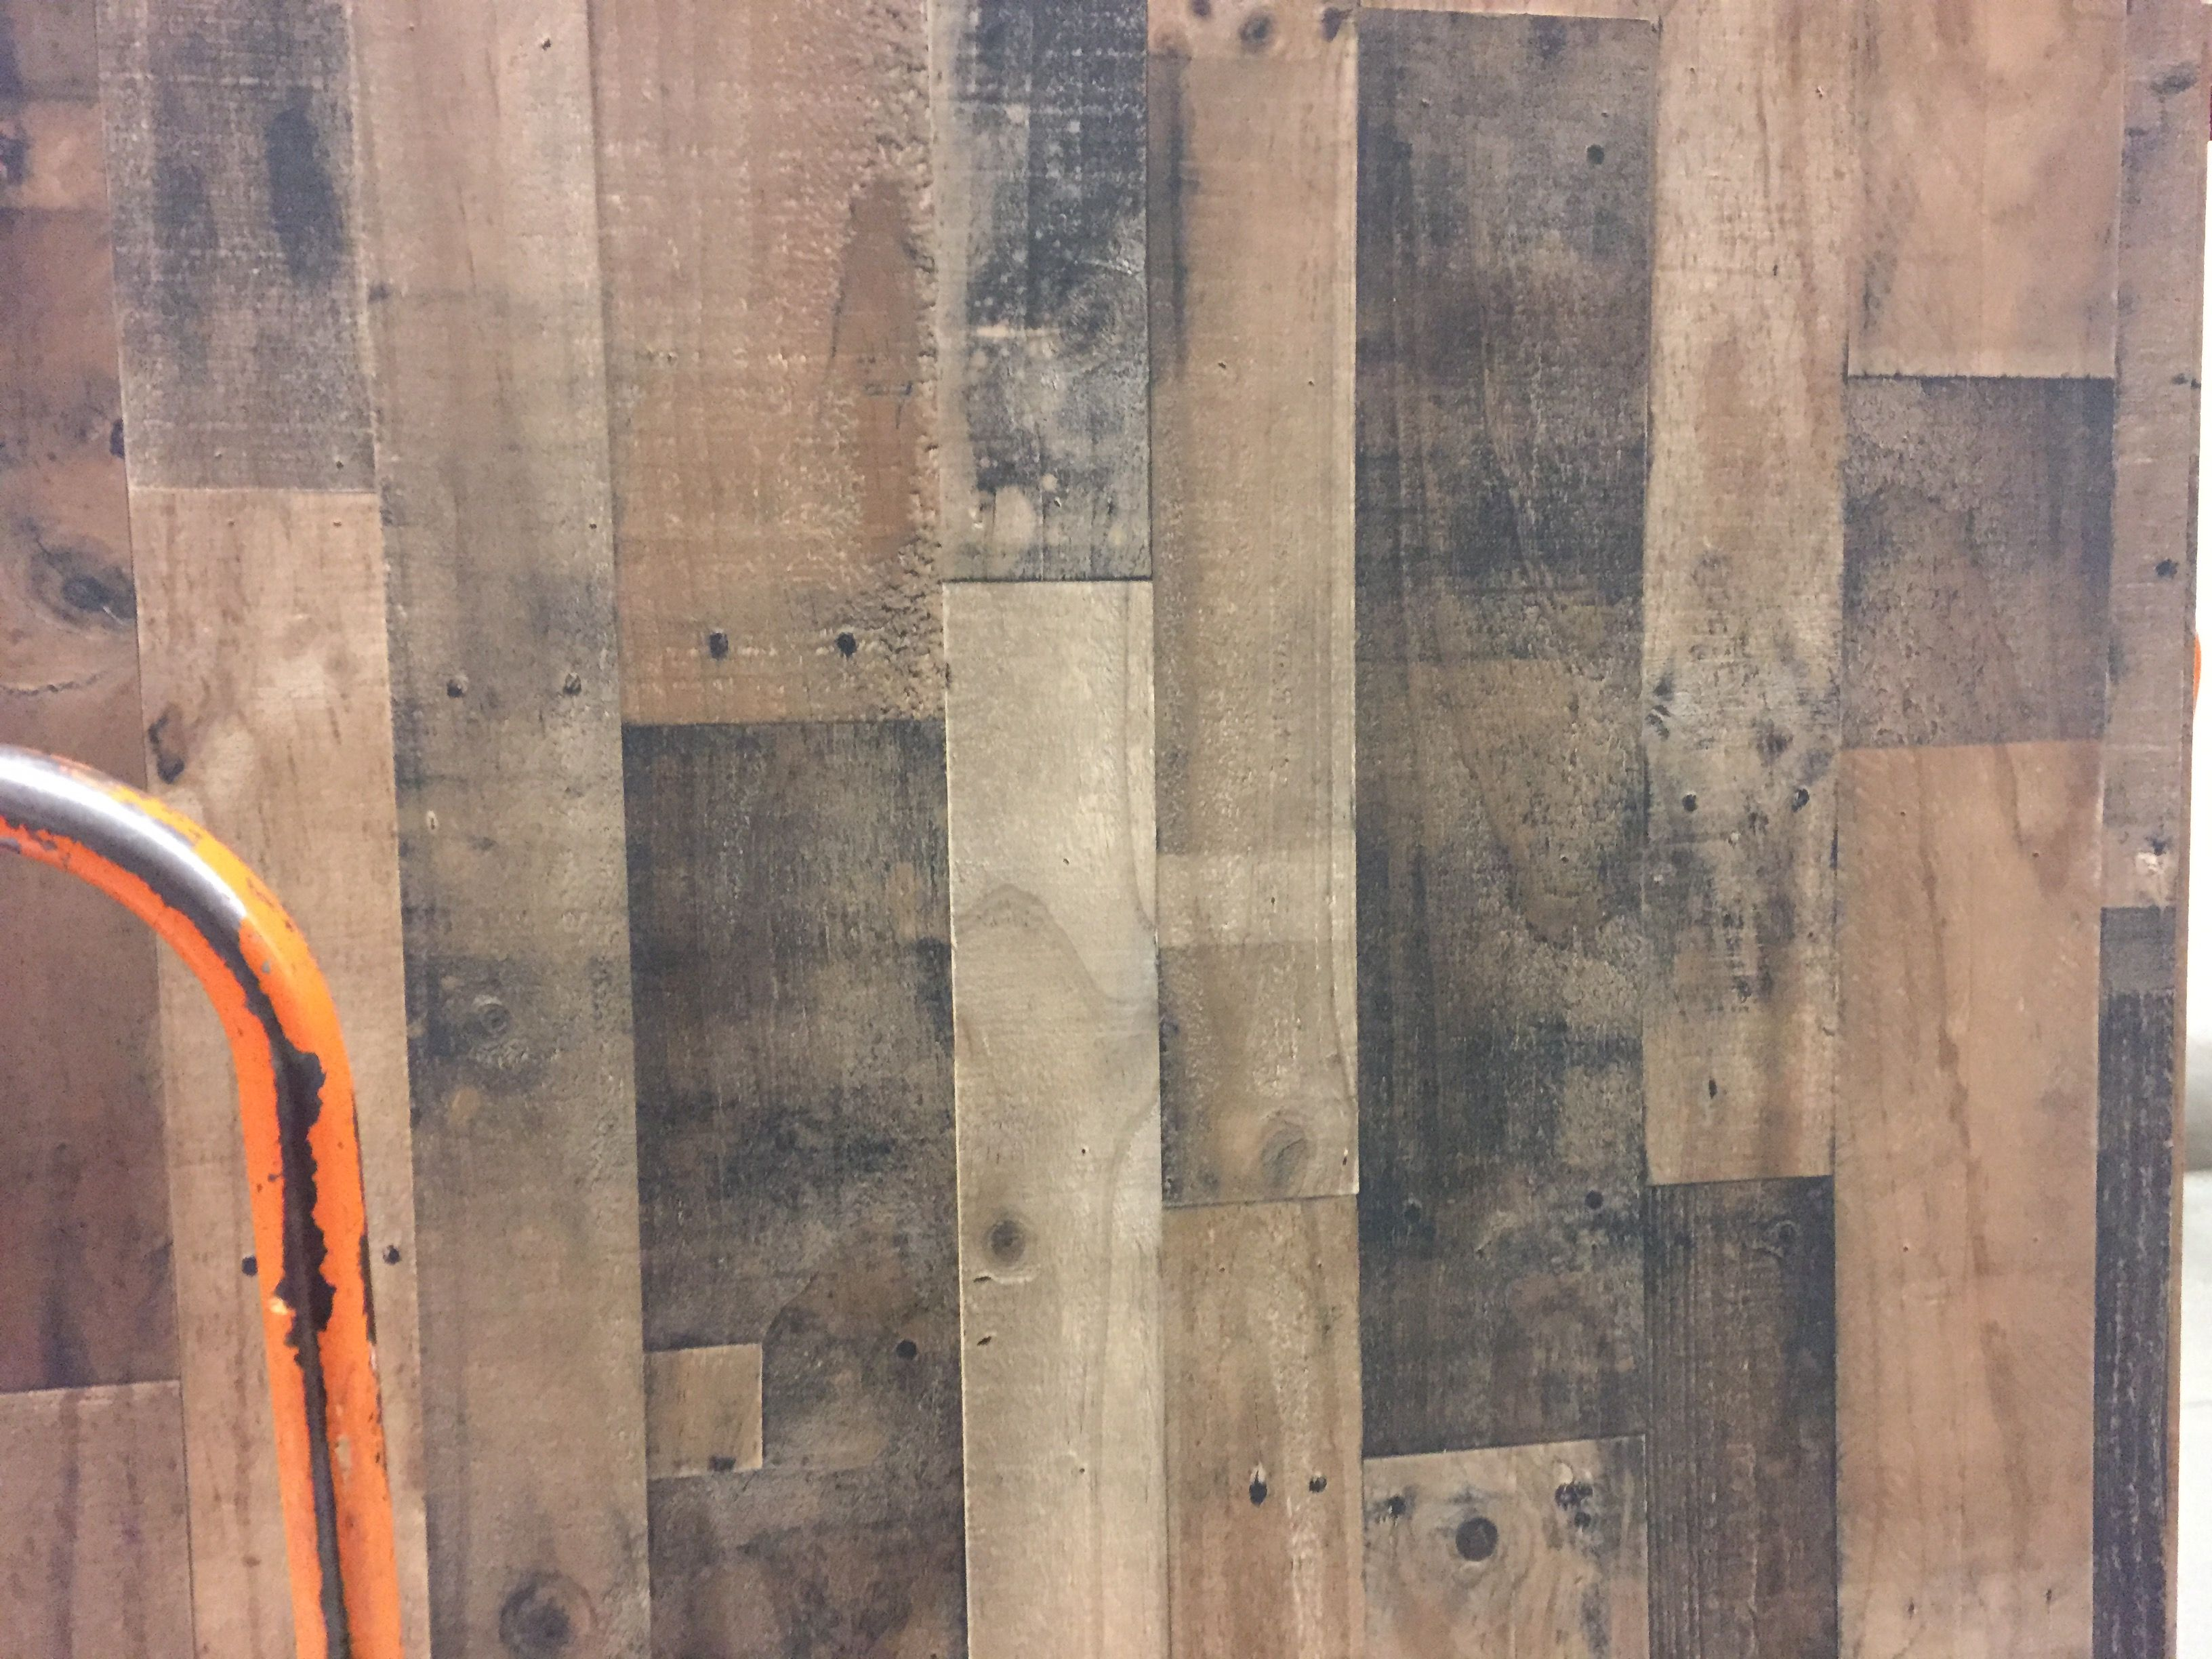 Printed 4x8 Panels From Home Depot Look Like Barn Wood You Have To Touch It To Know It S Just Paneling Shower Wall Panels Paneling Beadboard